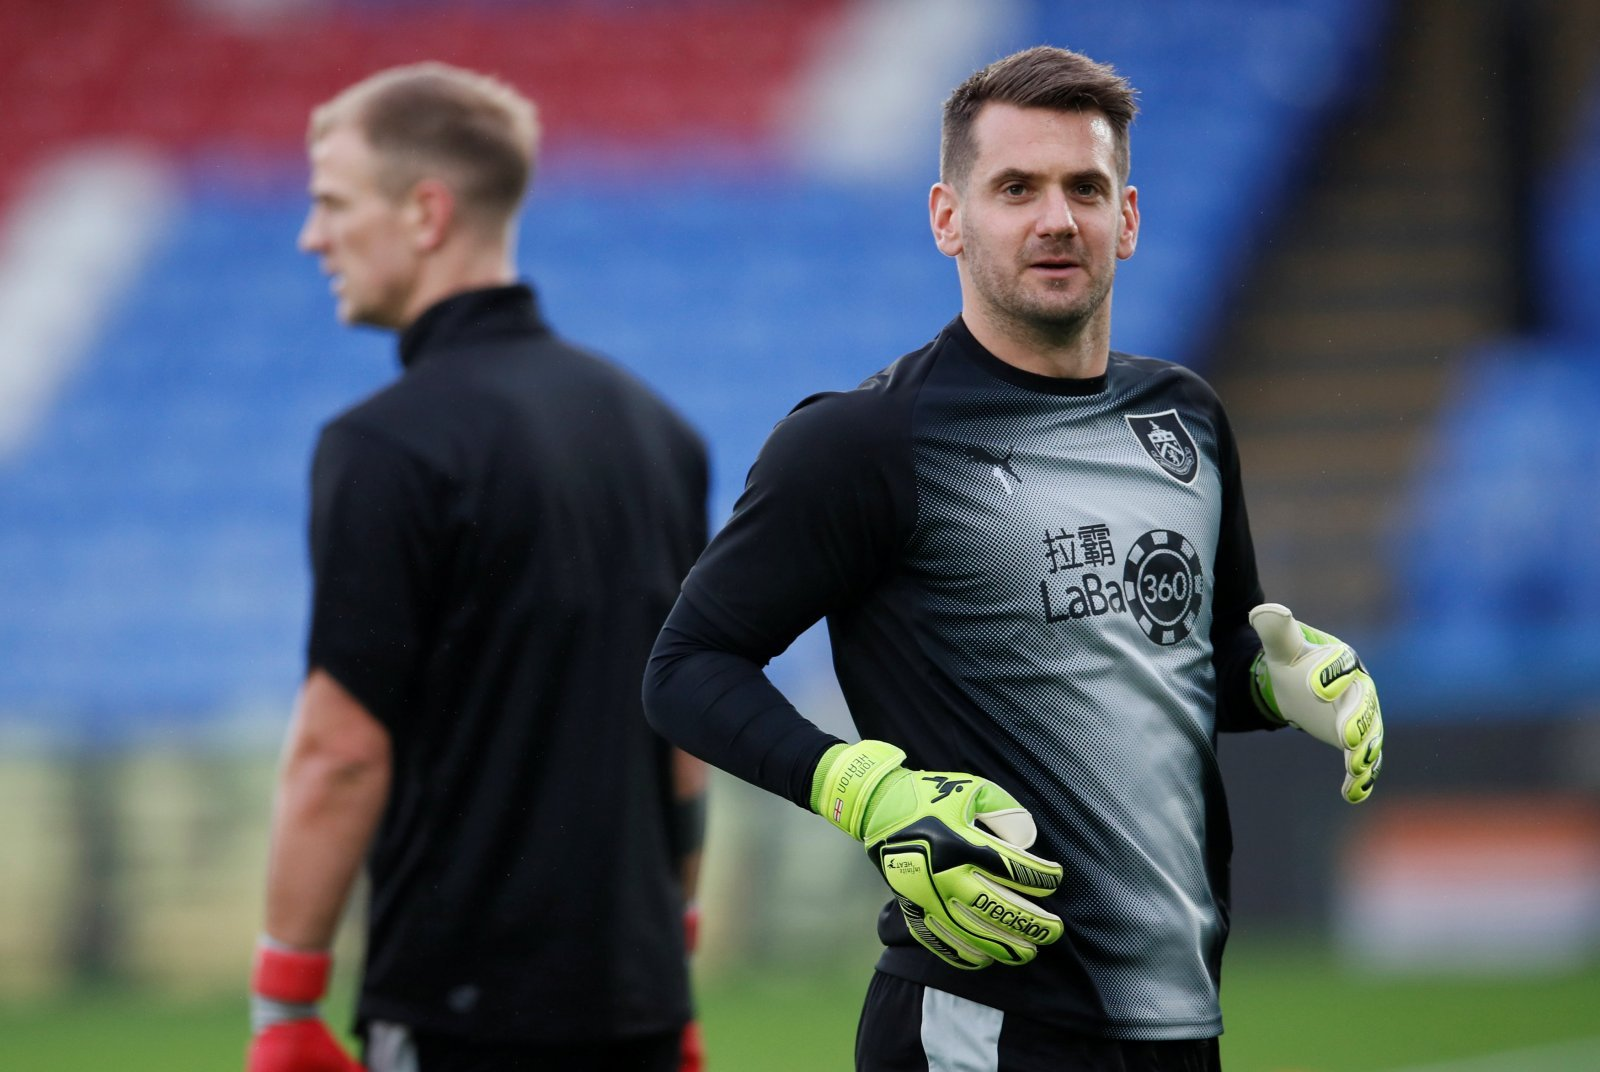 Opinion: Dean Smith should sanction Tom Heaton deal after Sean Dyche gives green light